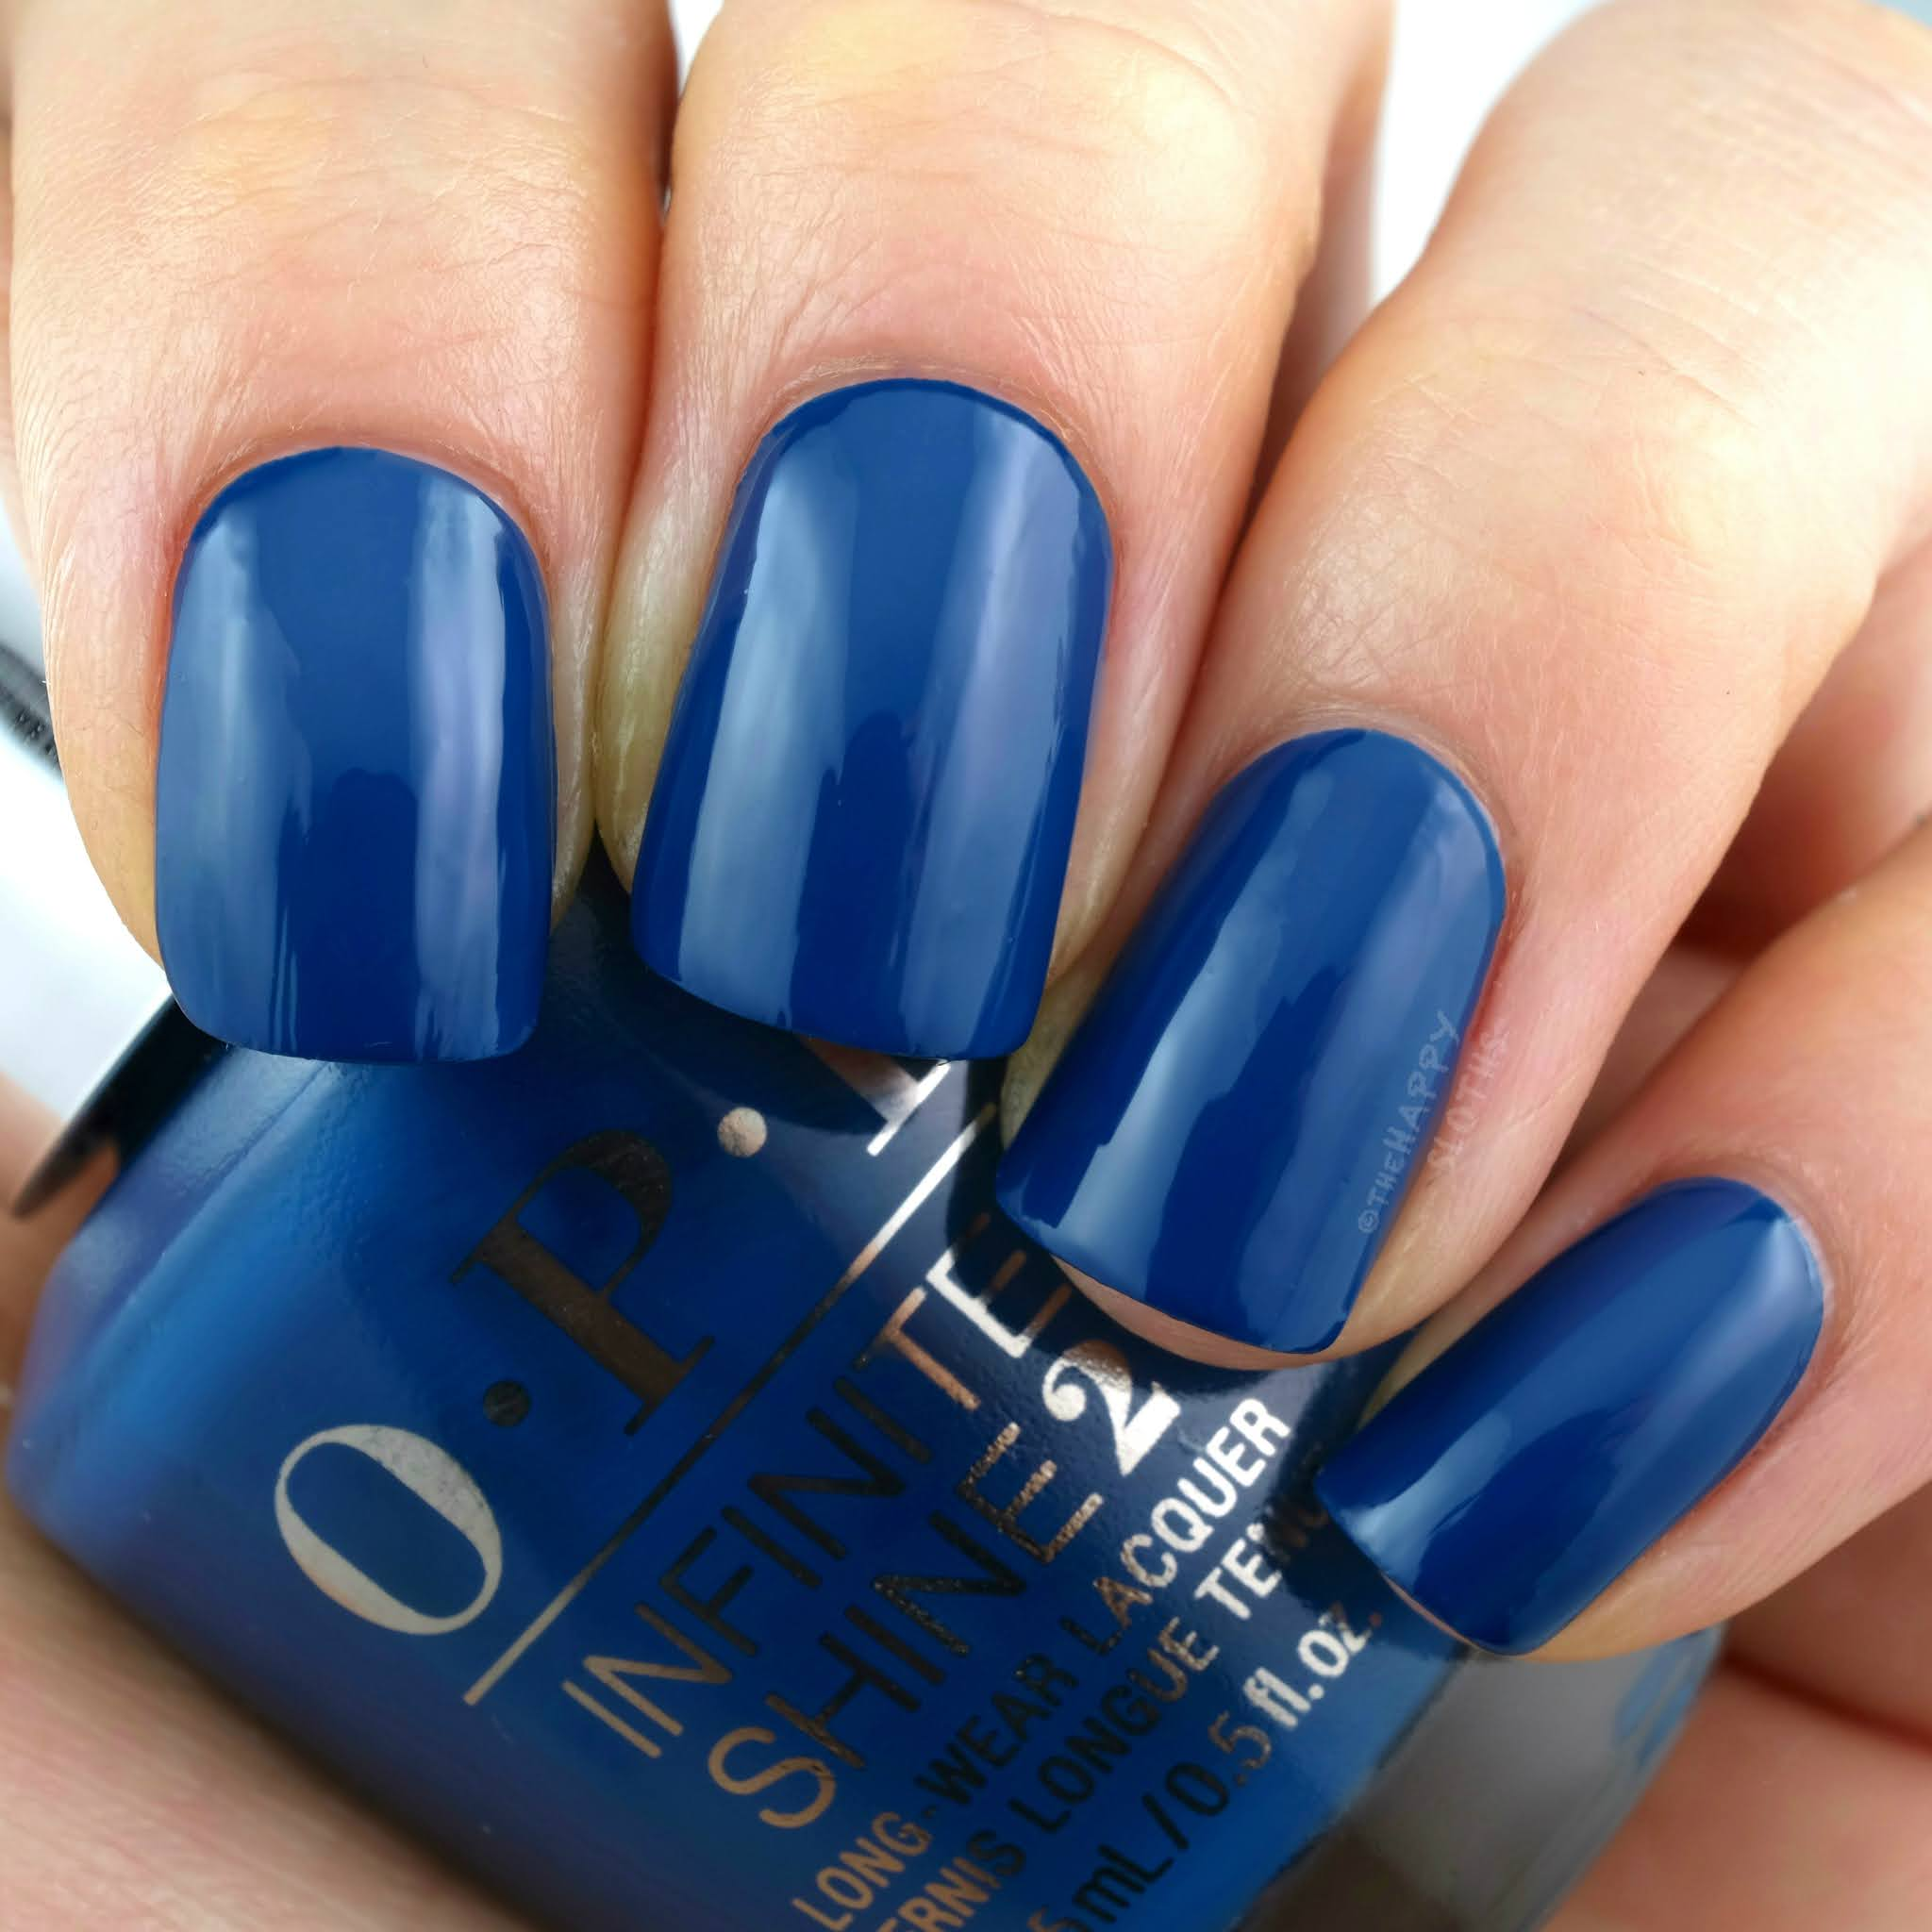 OPI Fall 2020 | Duomo Days, Isola Nights: Review and Swatches